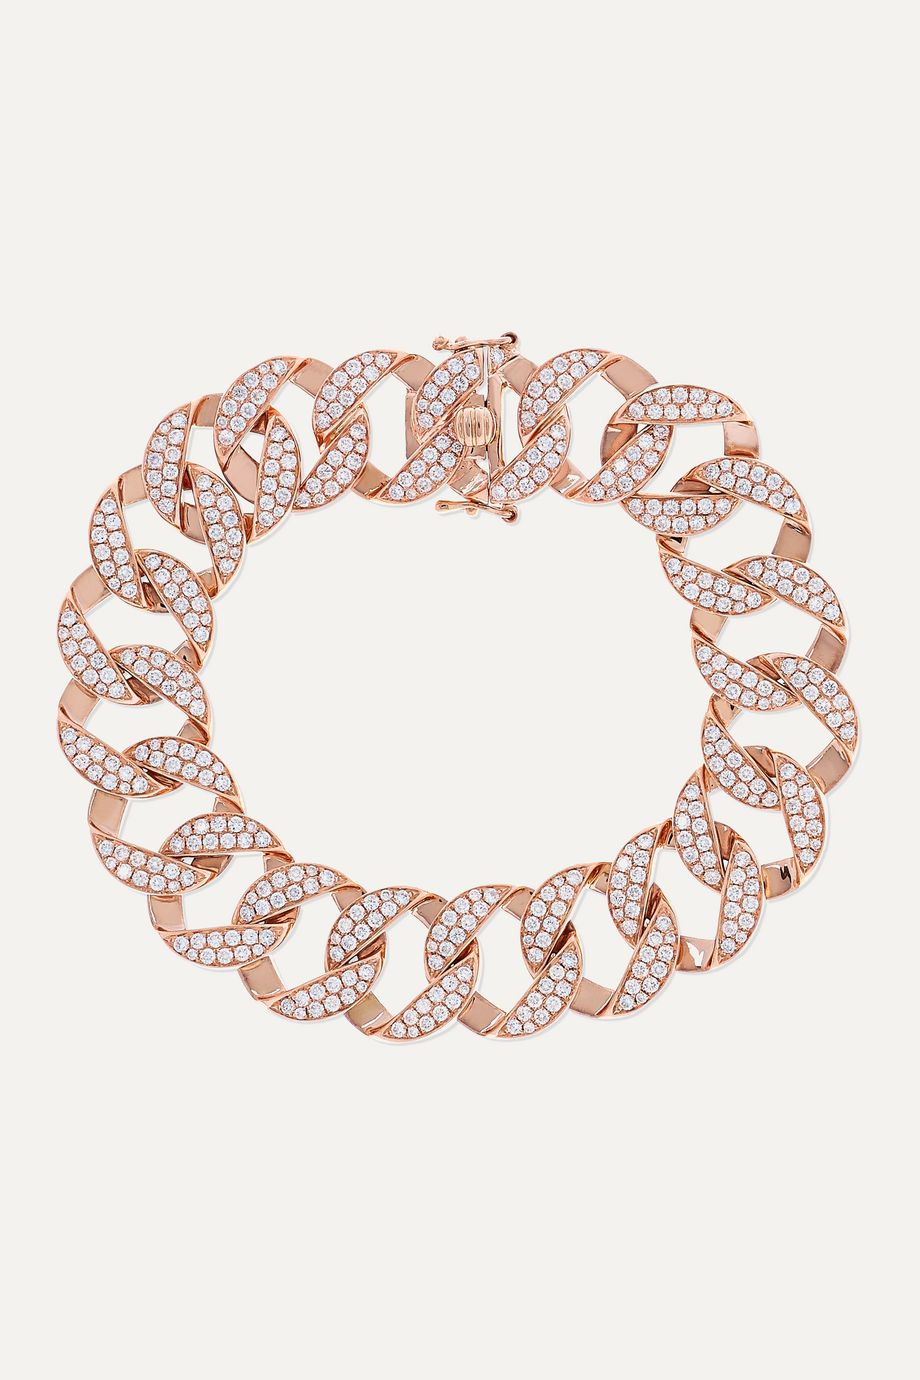 Anita Ko 18-karat rose gold diamond bracelet